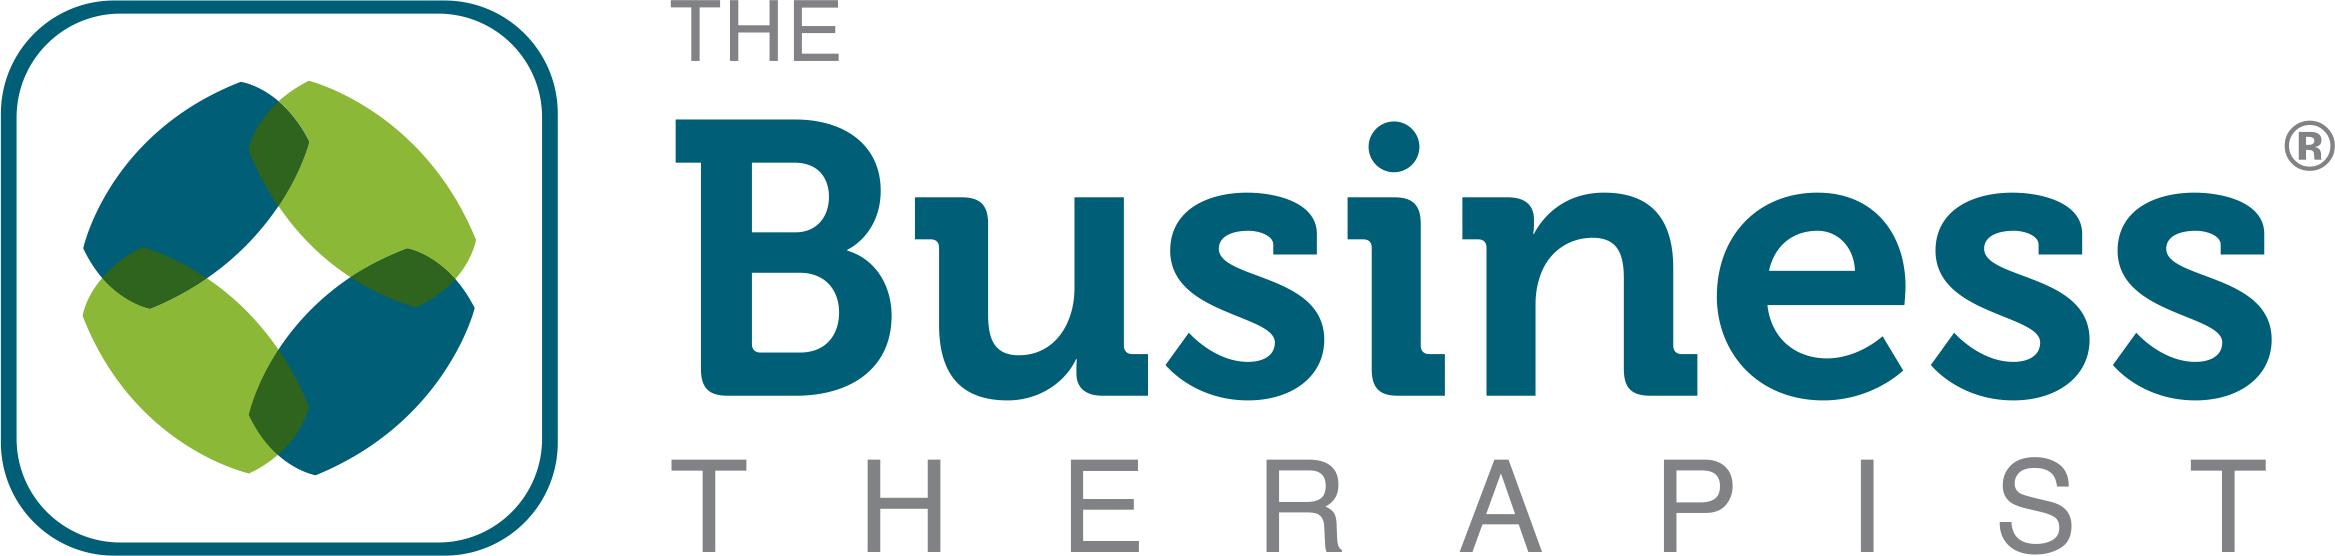 The Business Therapist Logo